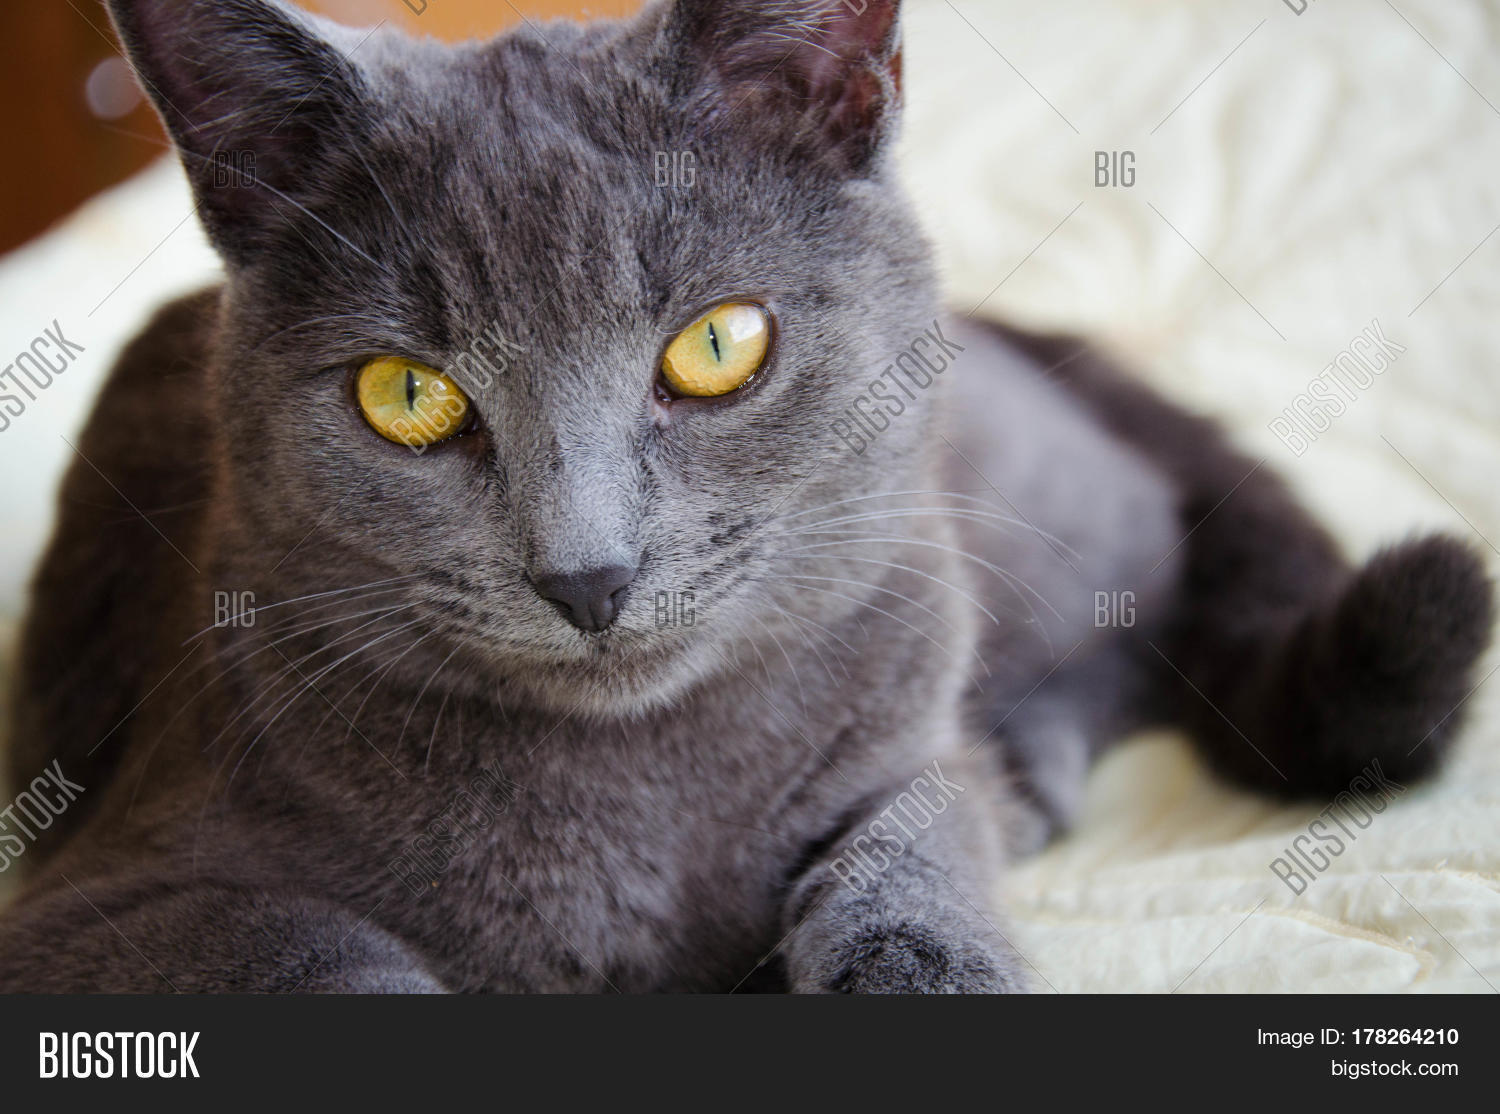 Russian Blue Breed Cat Image & Photo (Free Trial) | Bigstock